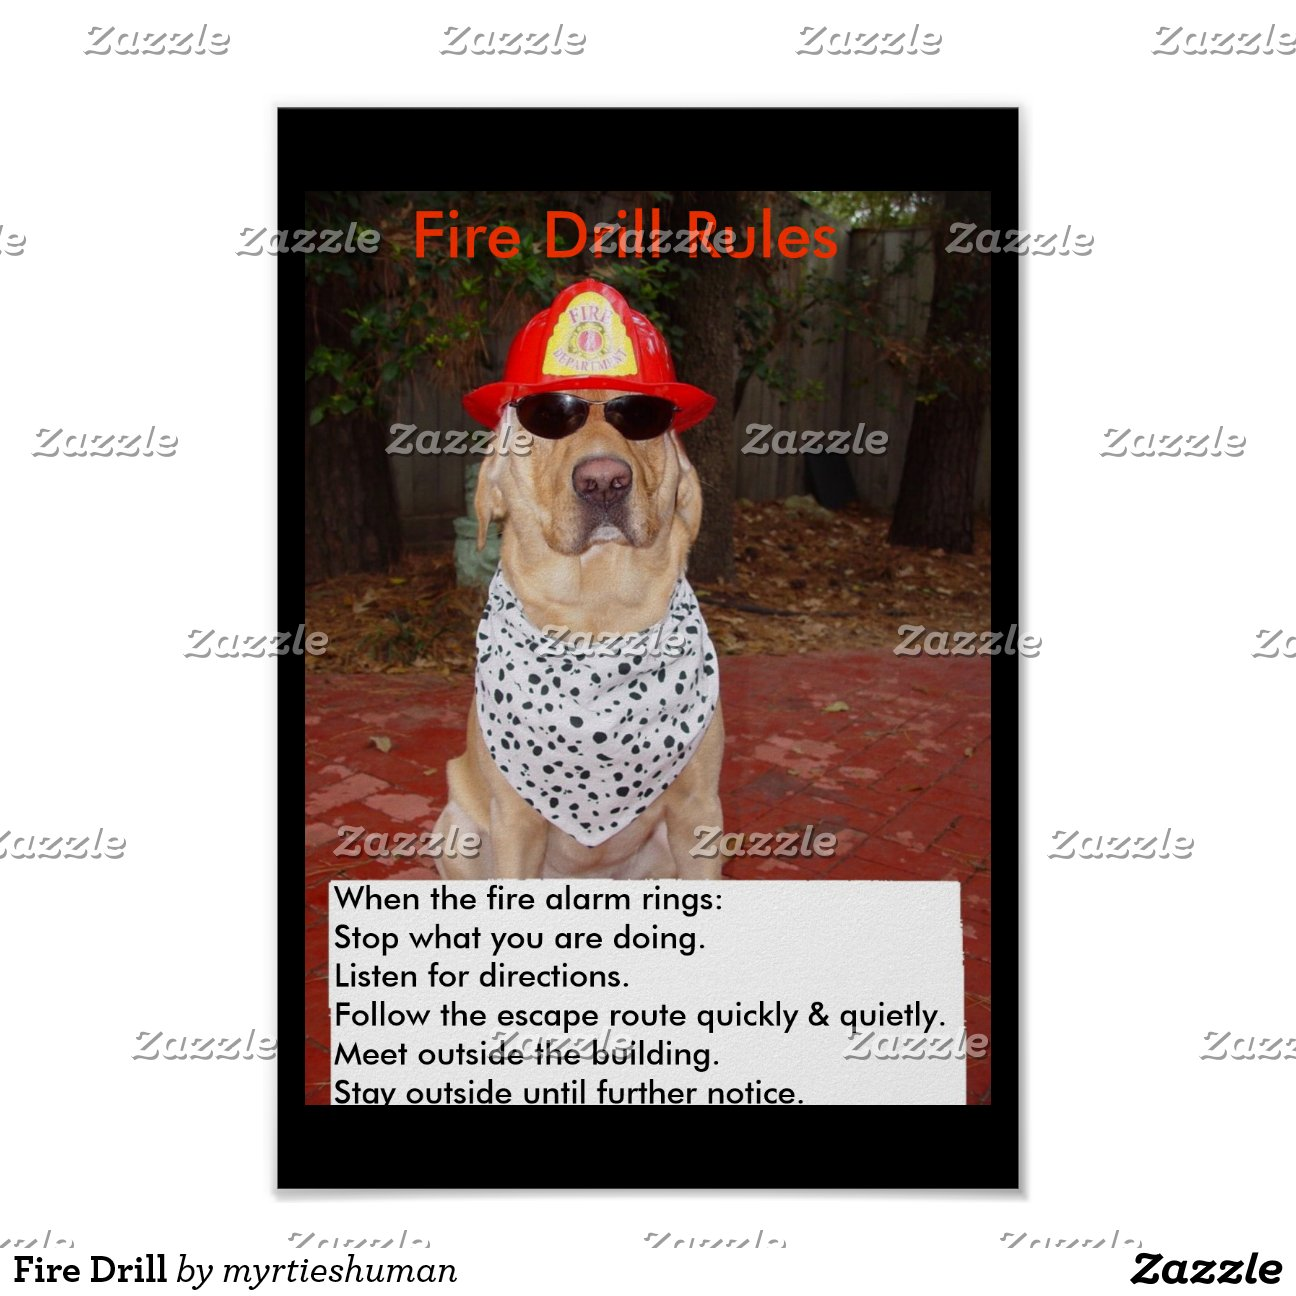 Fire Drill Poster-rc4cae00b35cd4a9f8110522962846830 2jm2